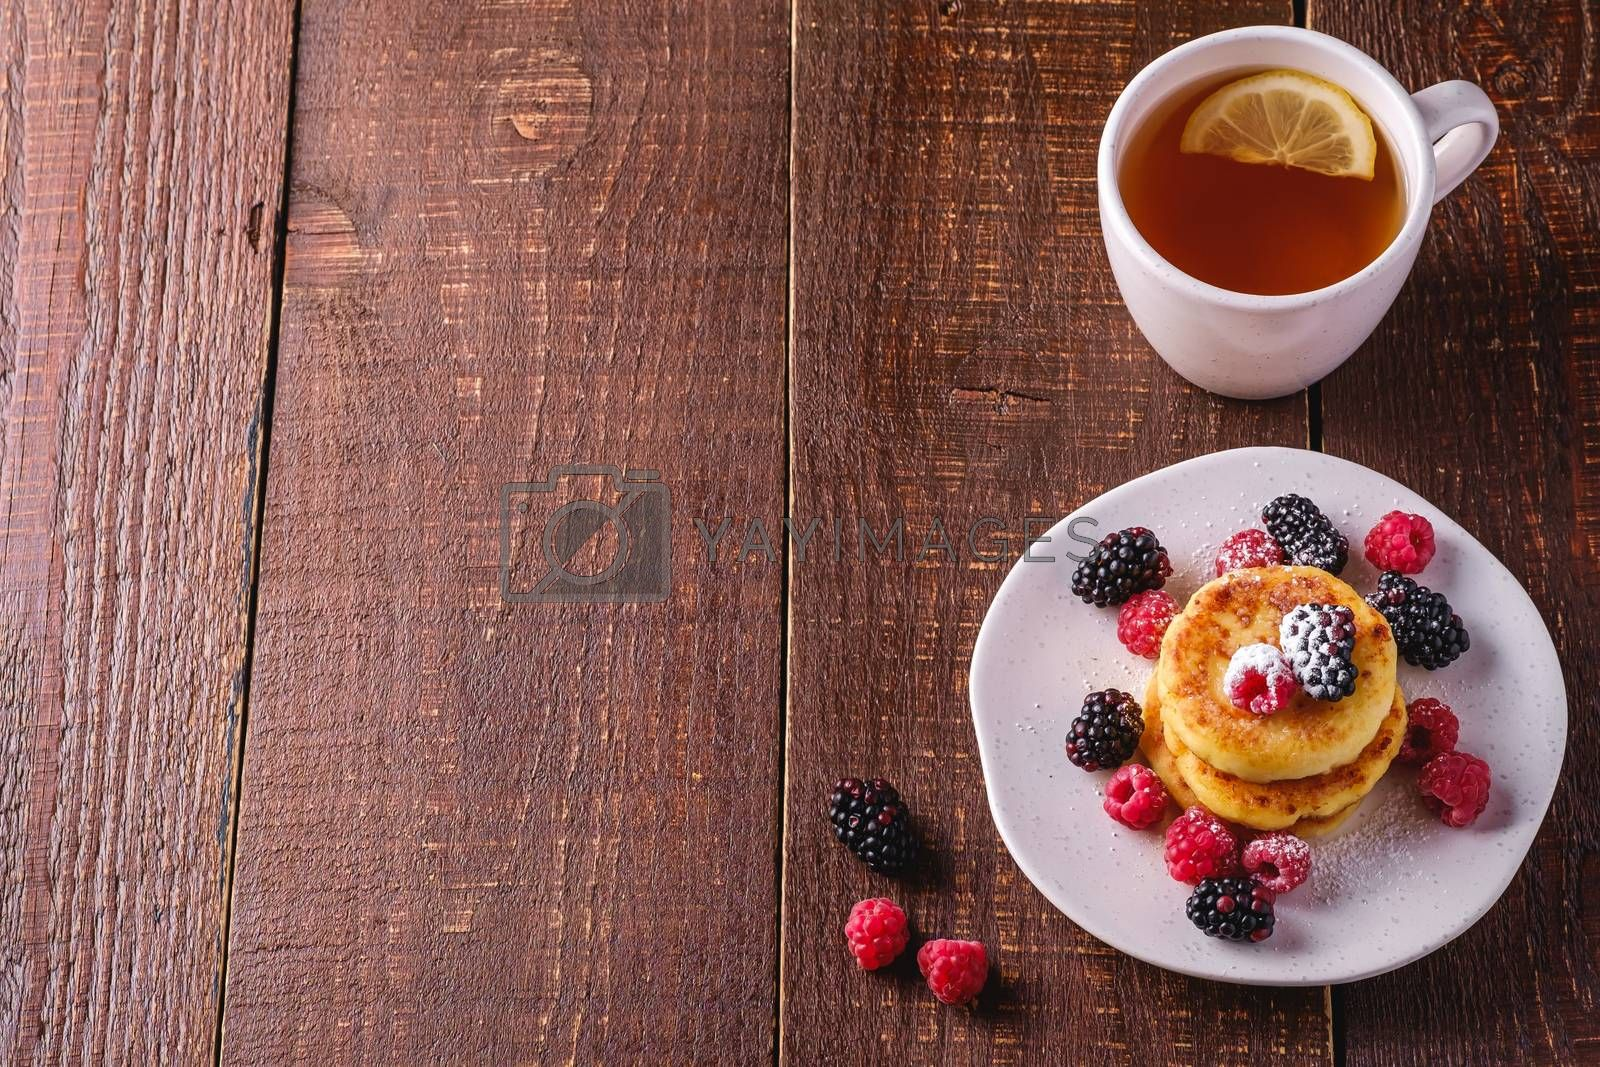 Cottage cheese pancakes, curd fritters dessert with raspberry and blackberry berries in plate near to hot tea cup with lemon slice on dark brown wooden background, angle view copy space